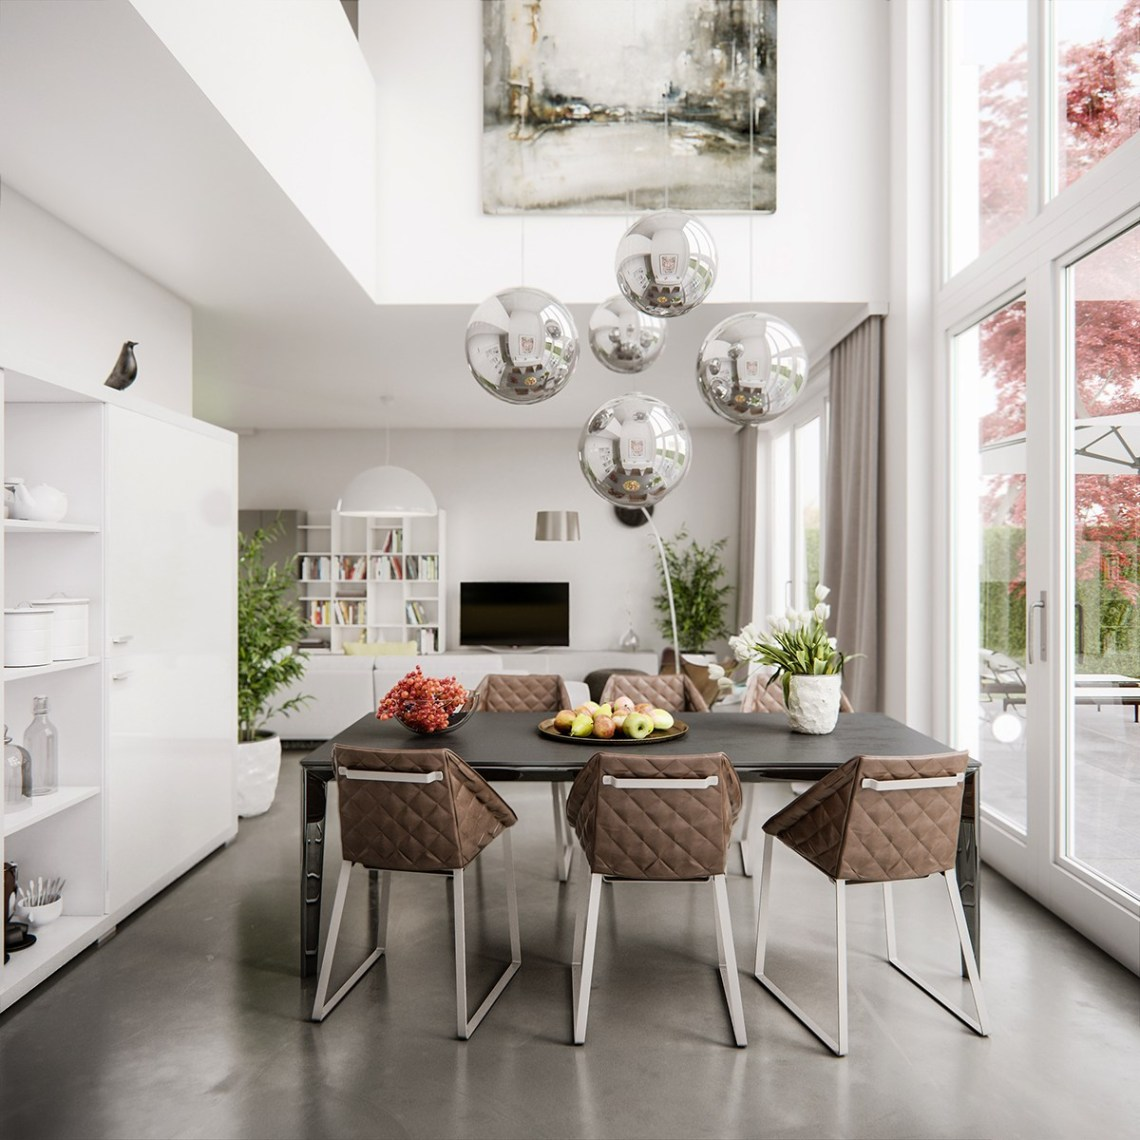 5 Living Rooms That Demonstrate Stylish Modern Design Trends